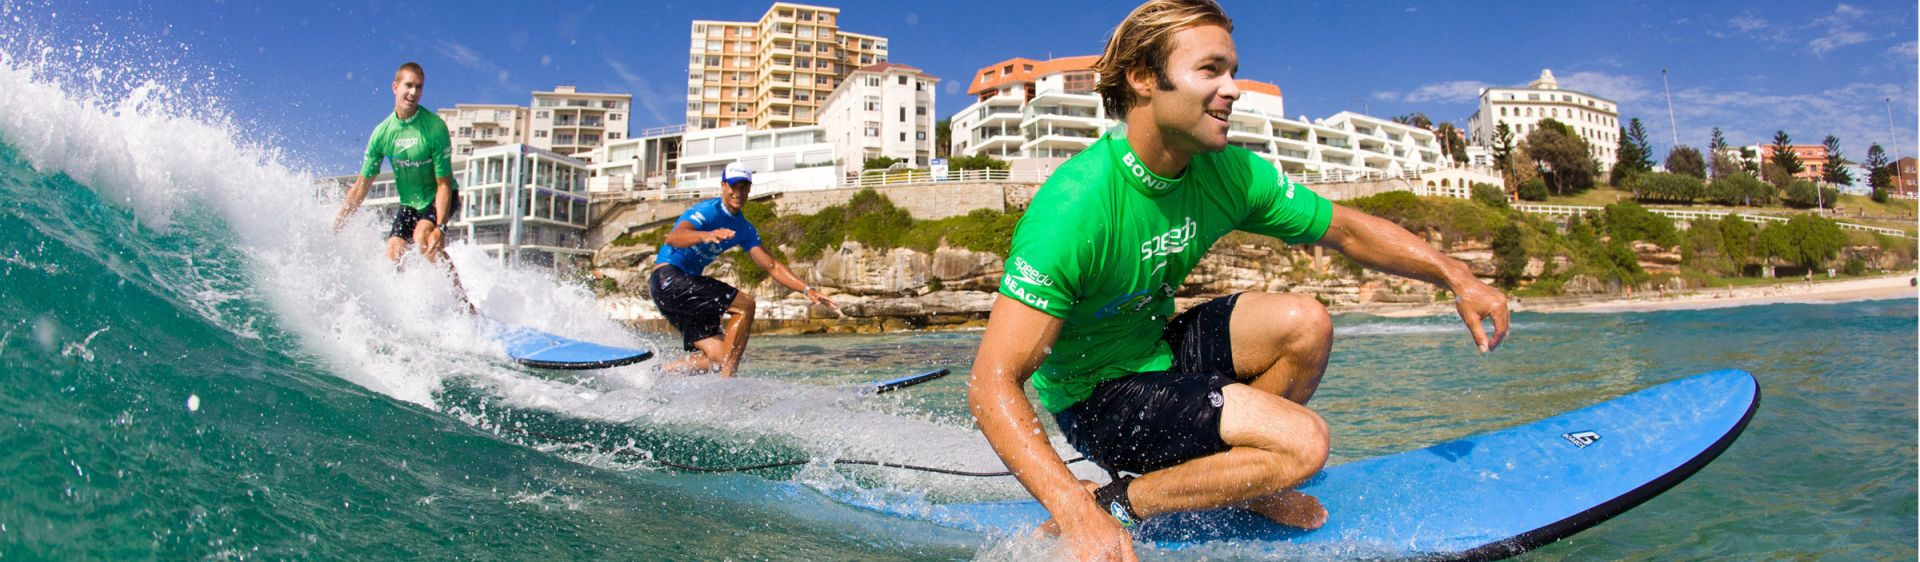 Let's Go Surfing, Bondi